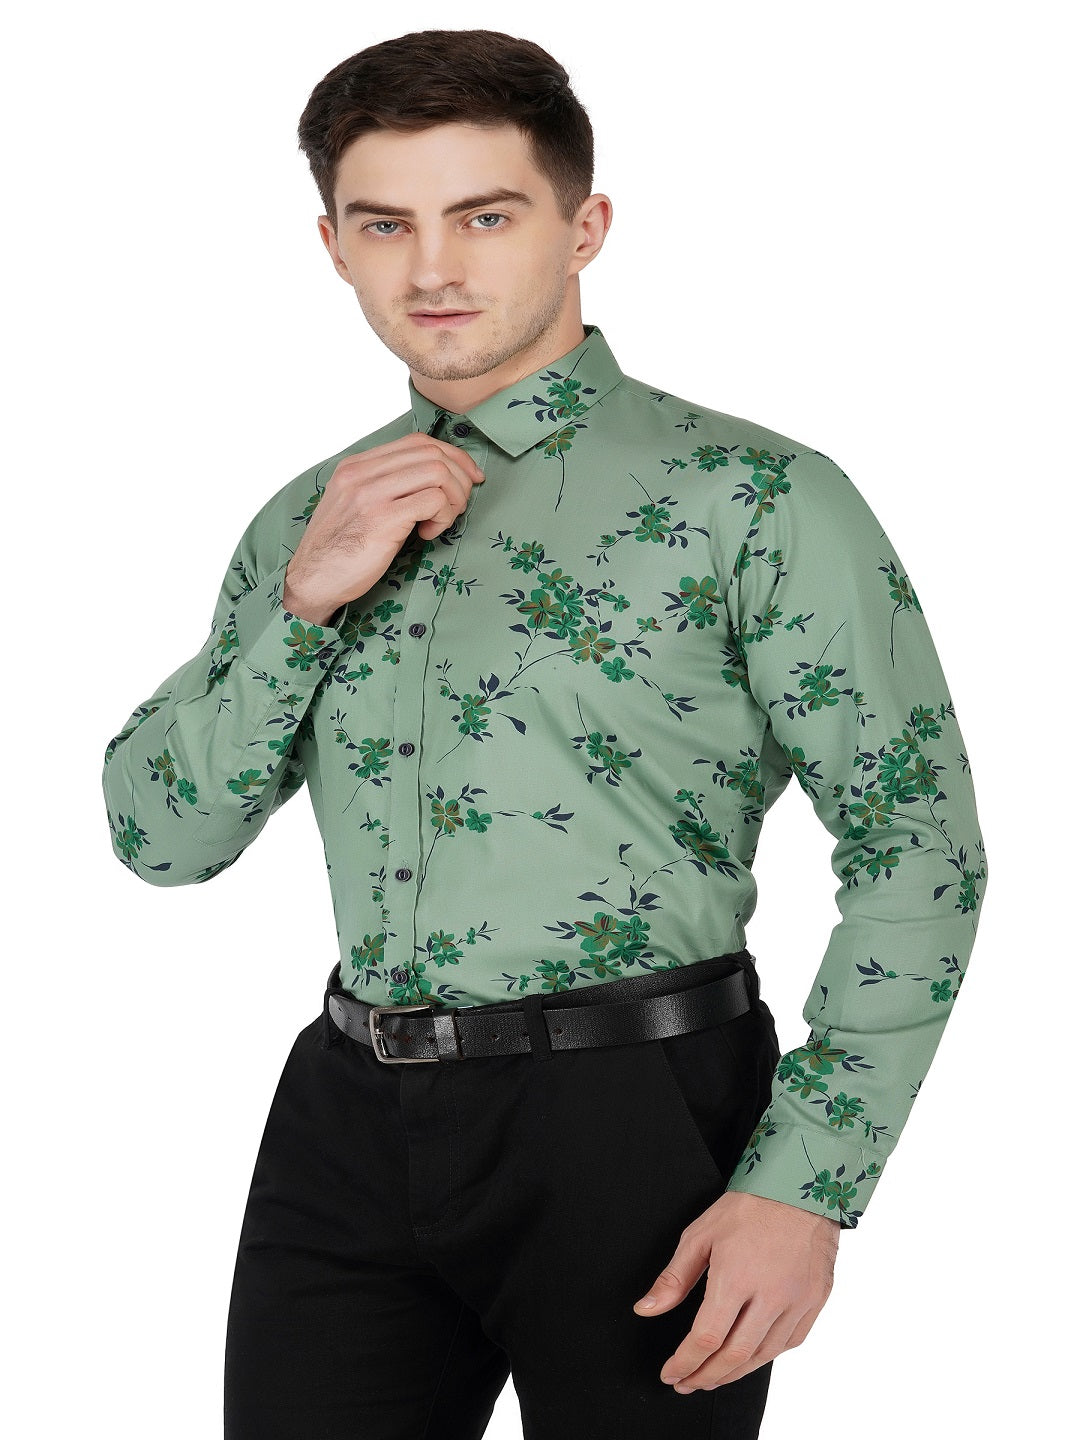 Indian Dark Pista Premium Cotton  Printed Shirt Code-1104 - Tooley Shirts